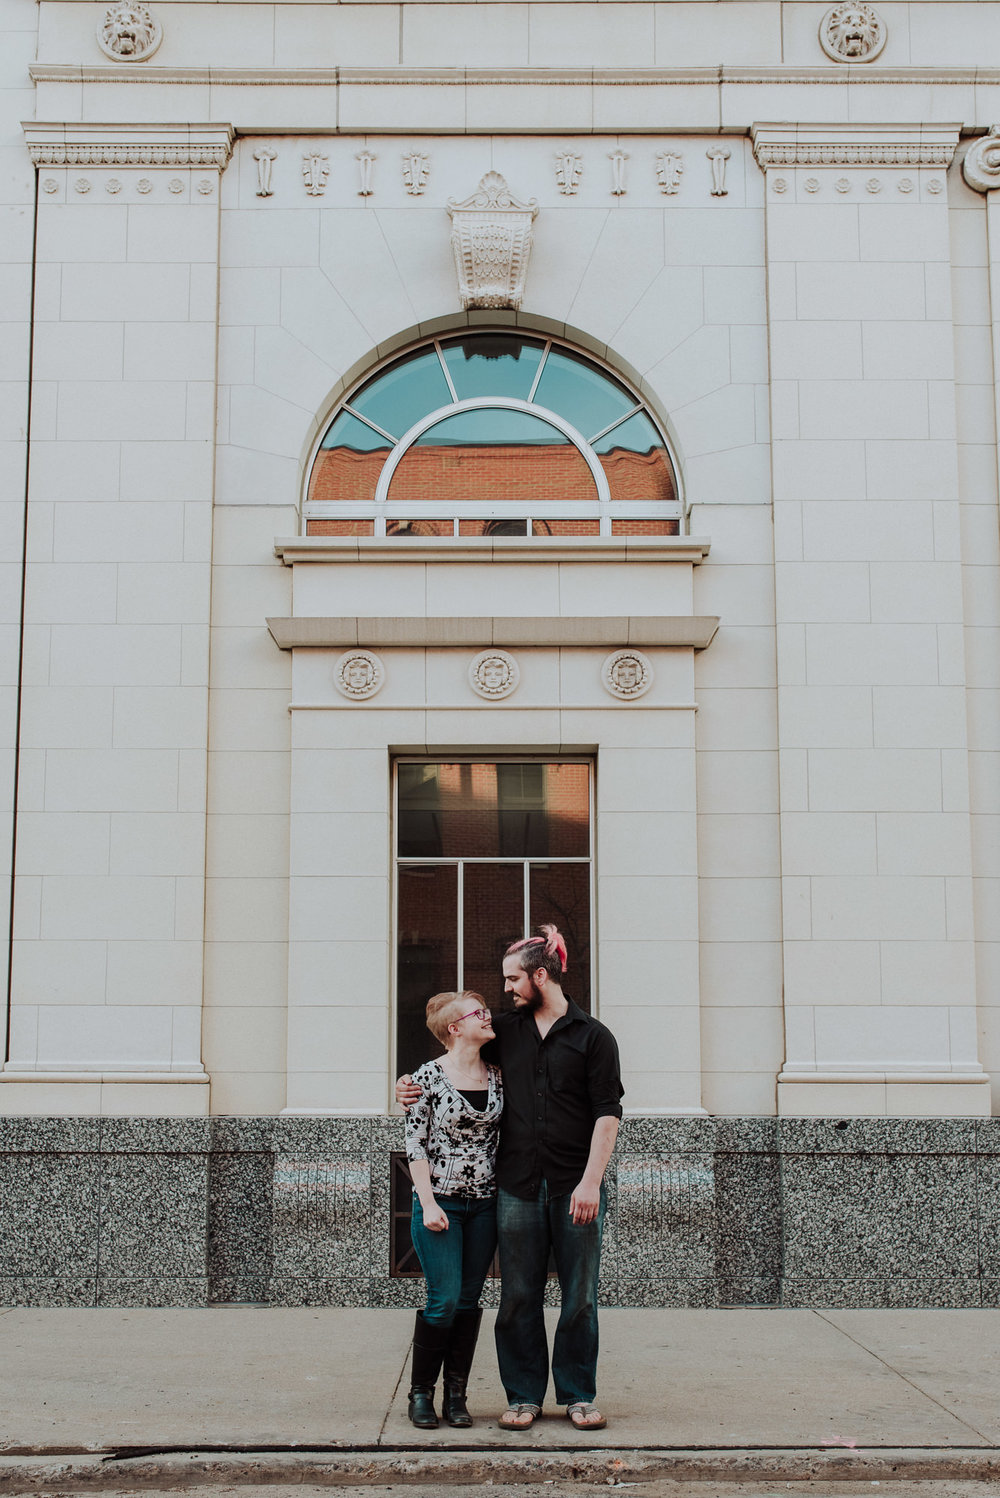 lume-photography-flint-engagement-session-19.jpg